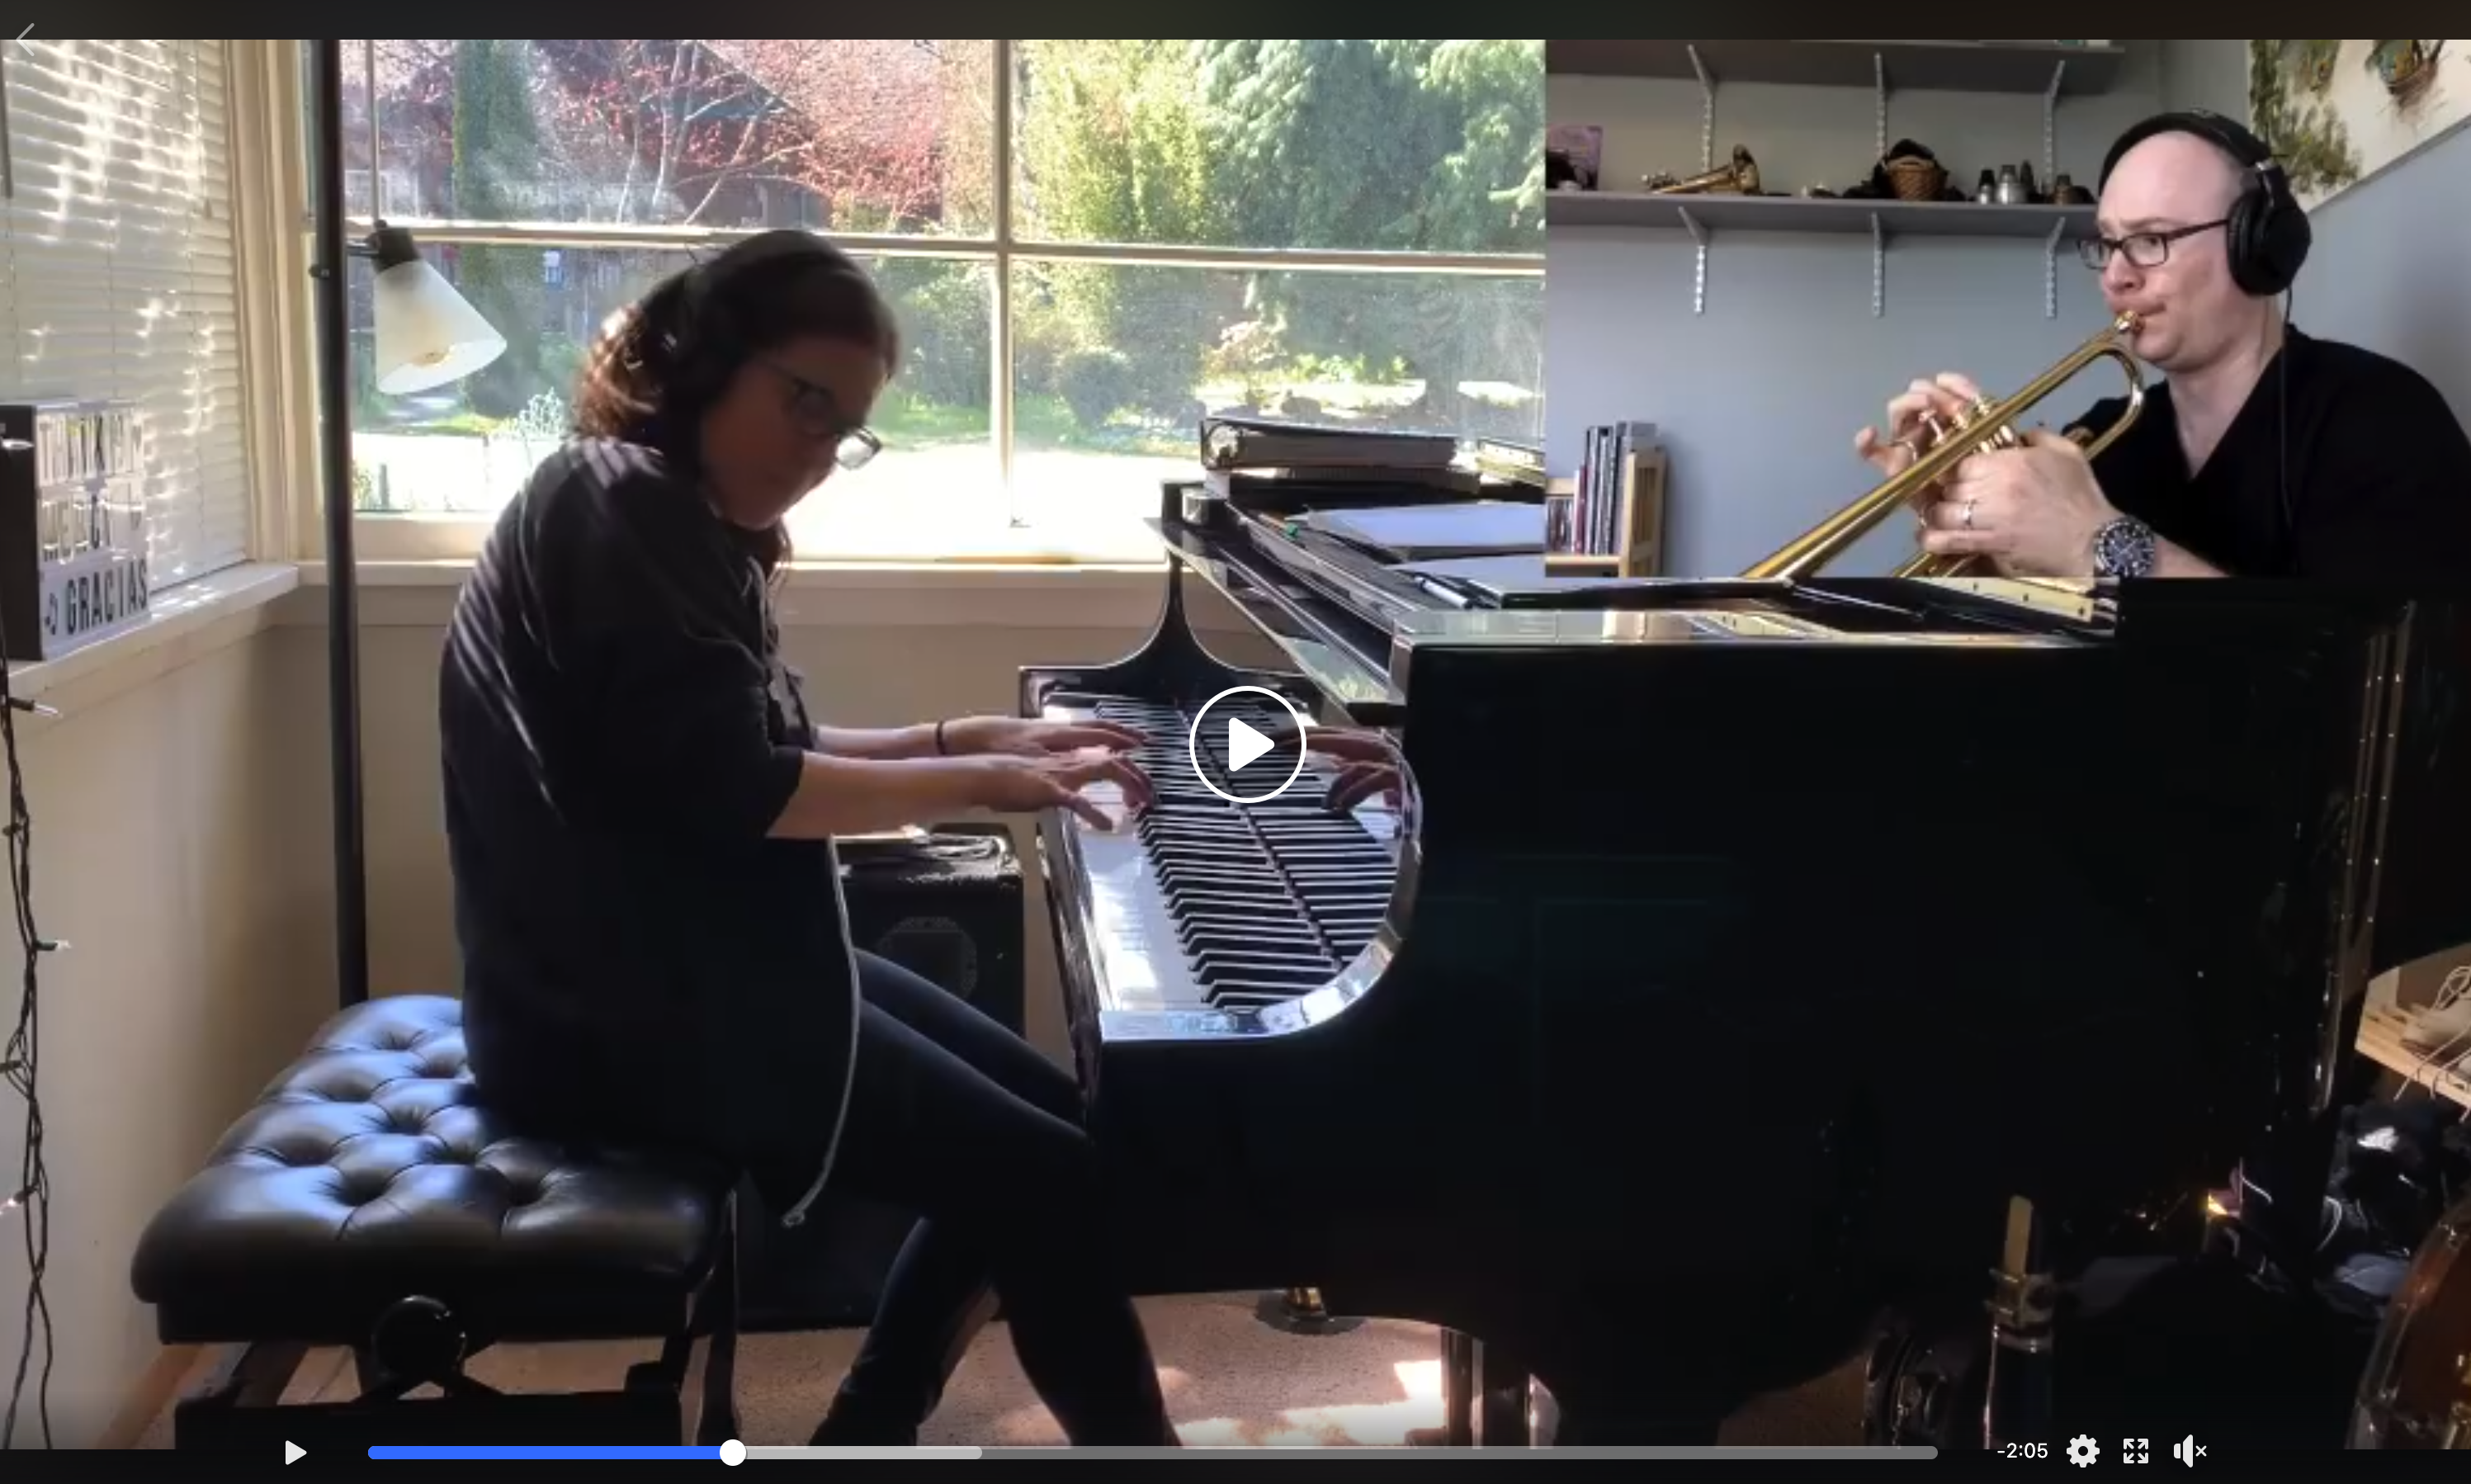 split-screen view of a woman playing piano at home, and a man playing trombone at home